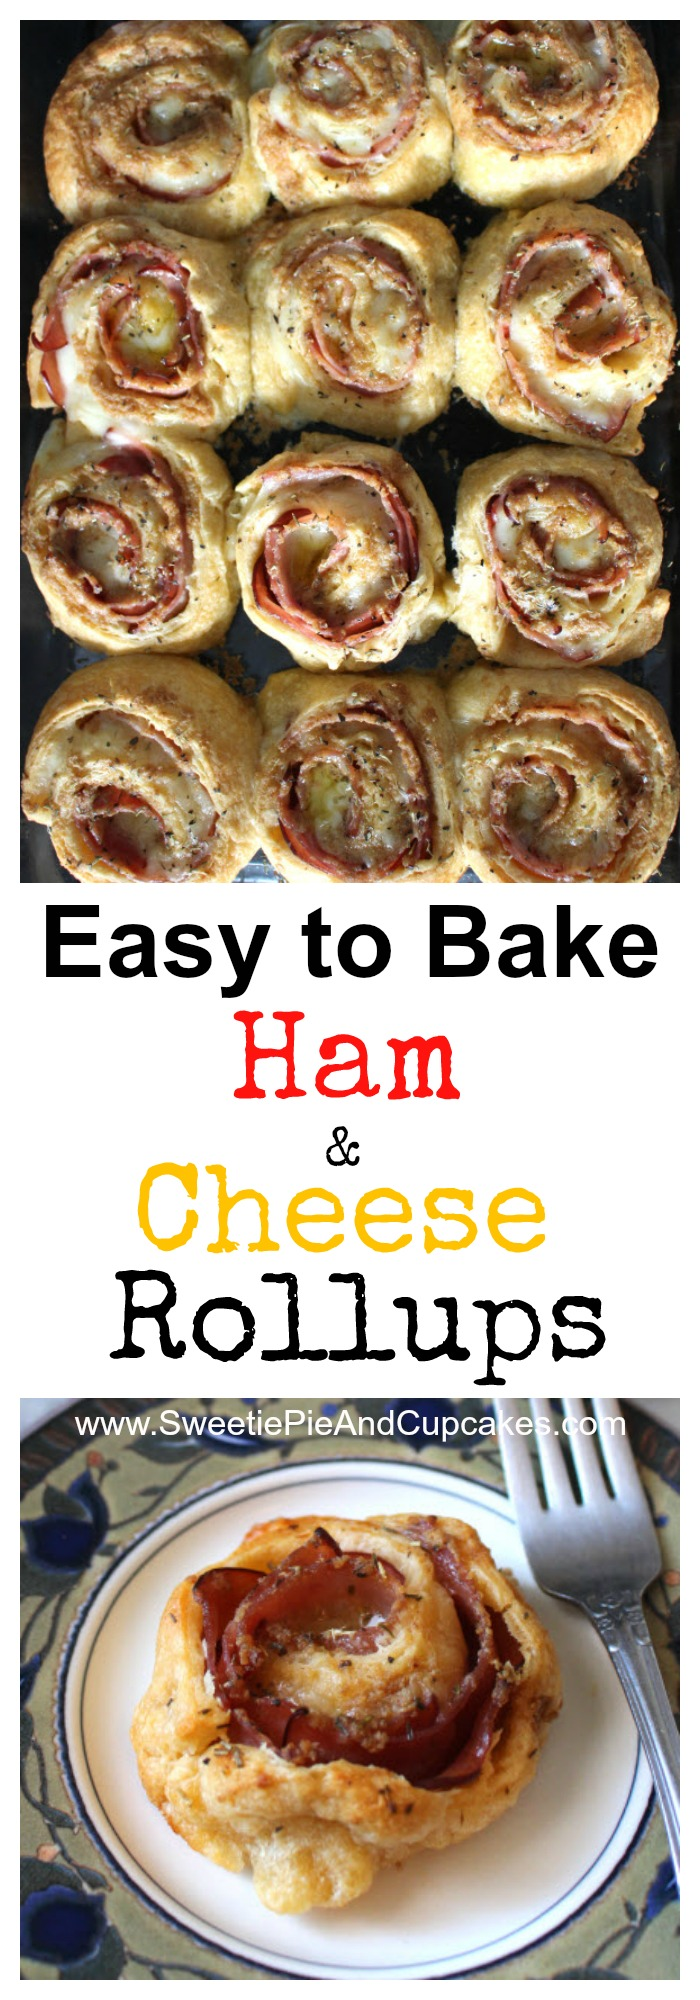 Yummy ham cheese rollups are easy to make and great for parties